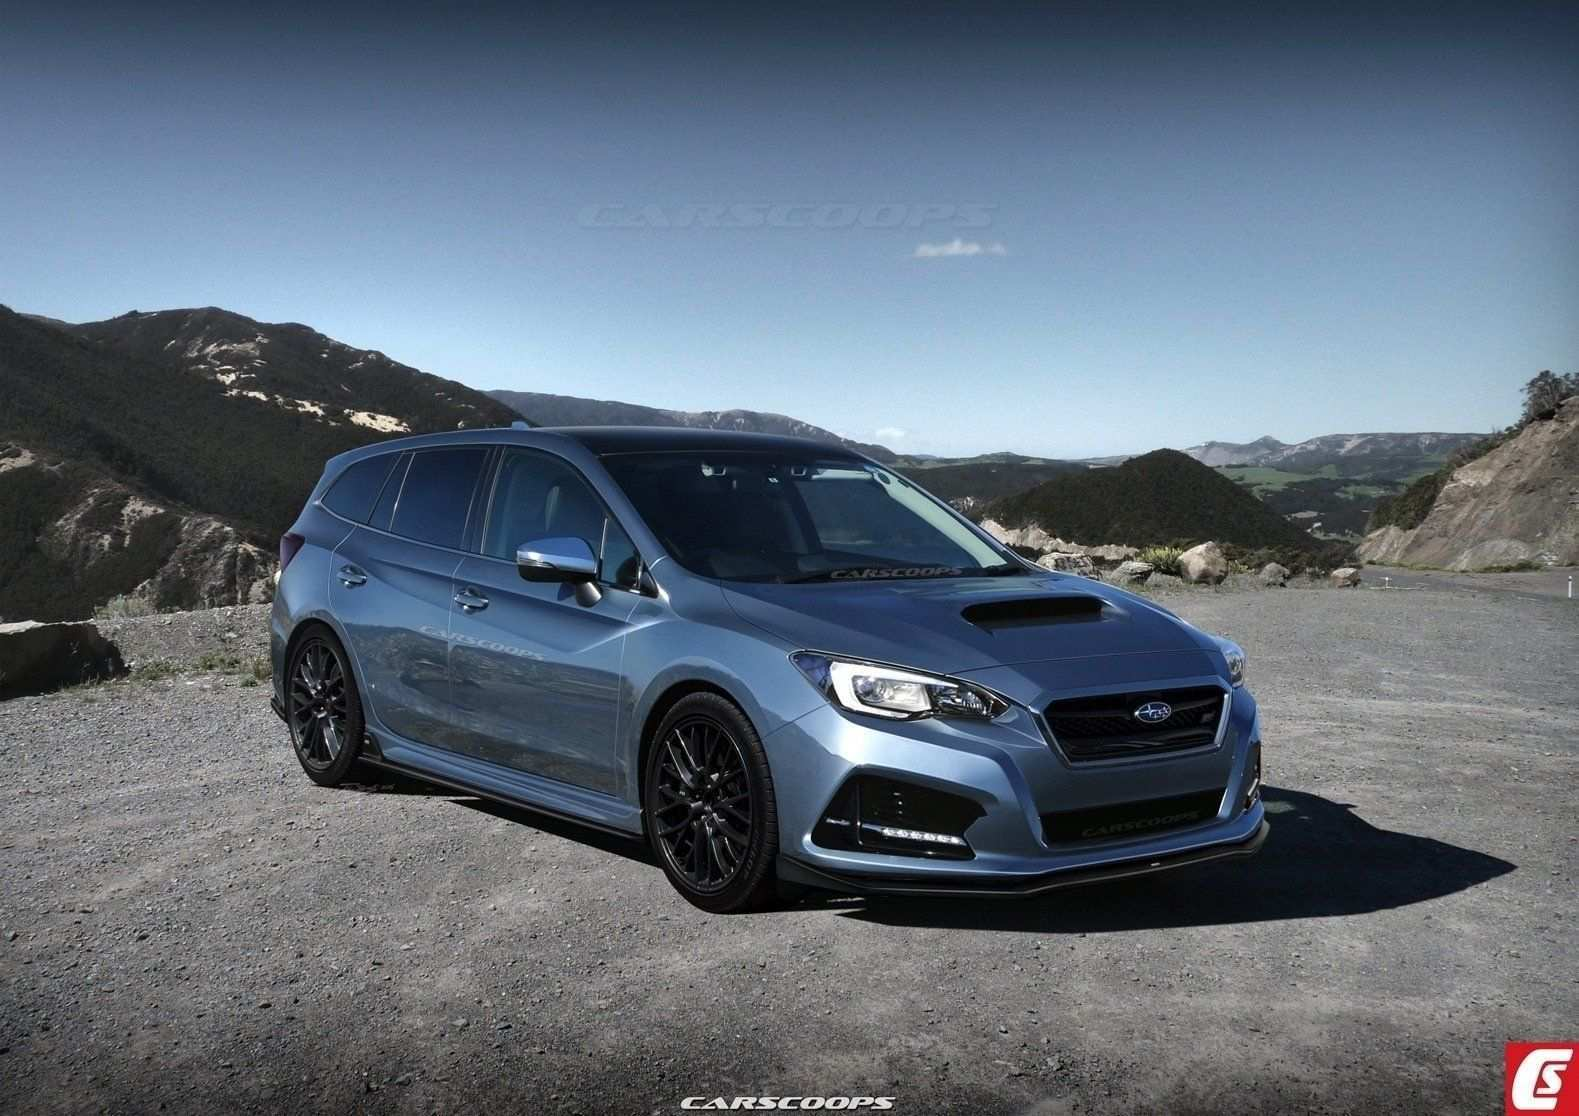 85 All New Subaru Legacy Gt 2019 Release Date